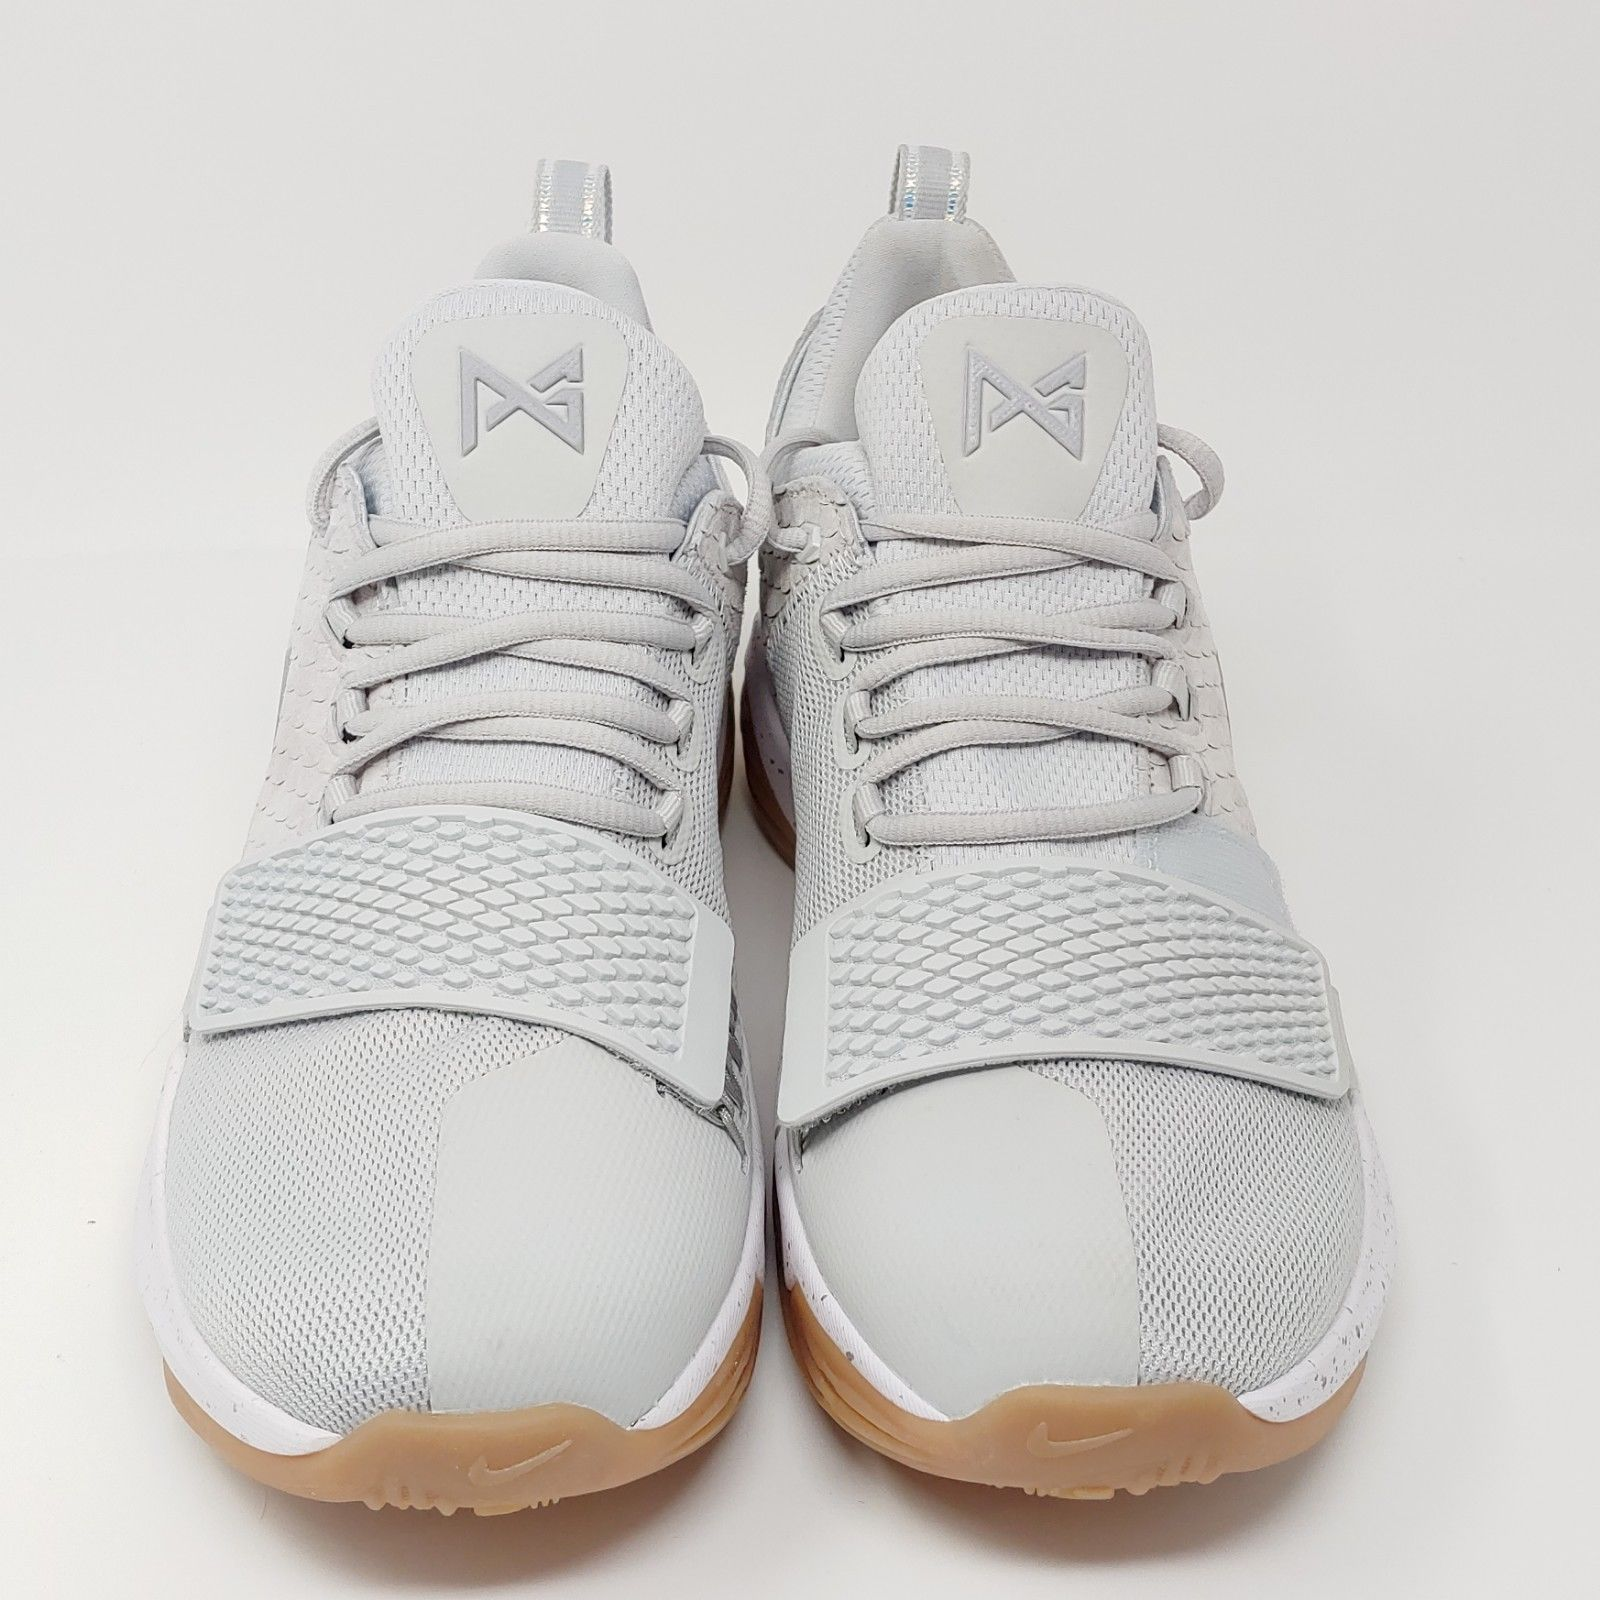 brand new 17202 5899f ... Nike Paul George PG1 Pure Platinum Wolf Grey Basketball Sneakers Mens  Size 9.5 ...